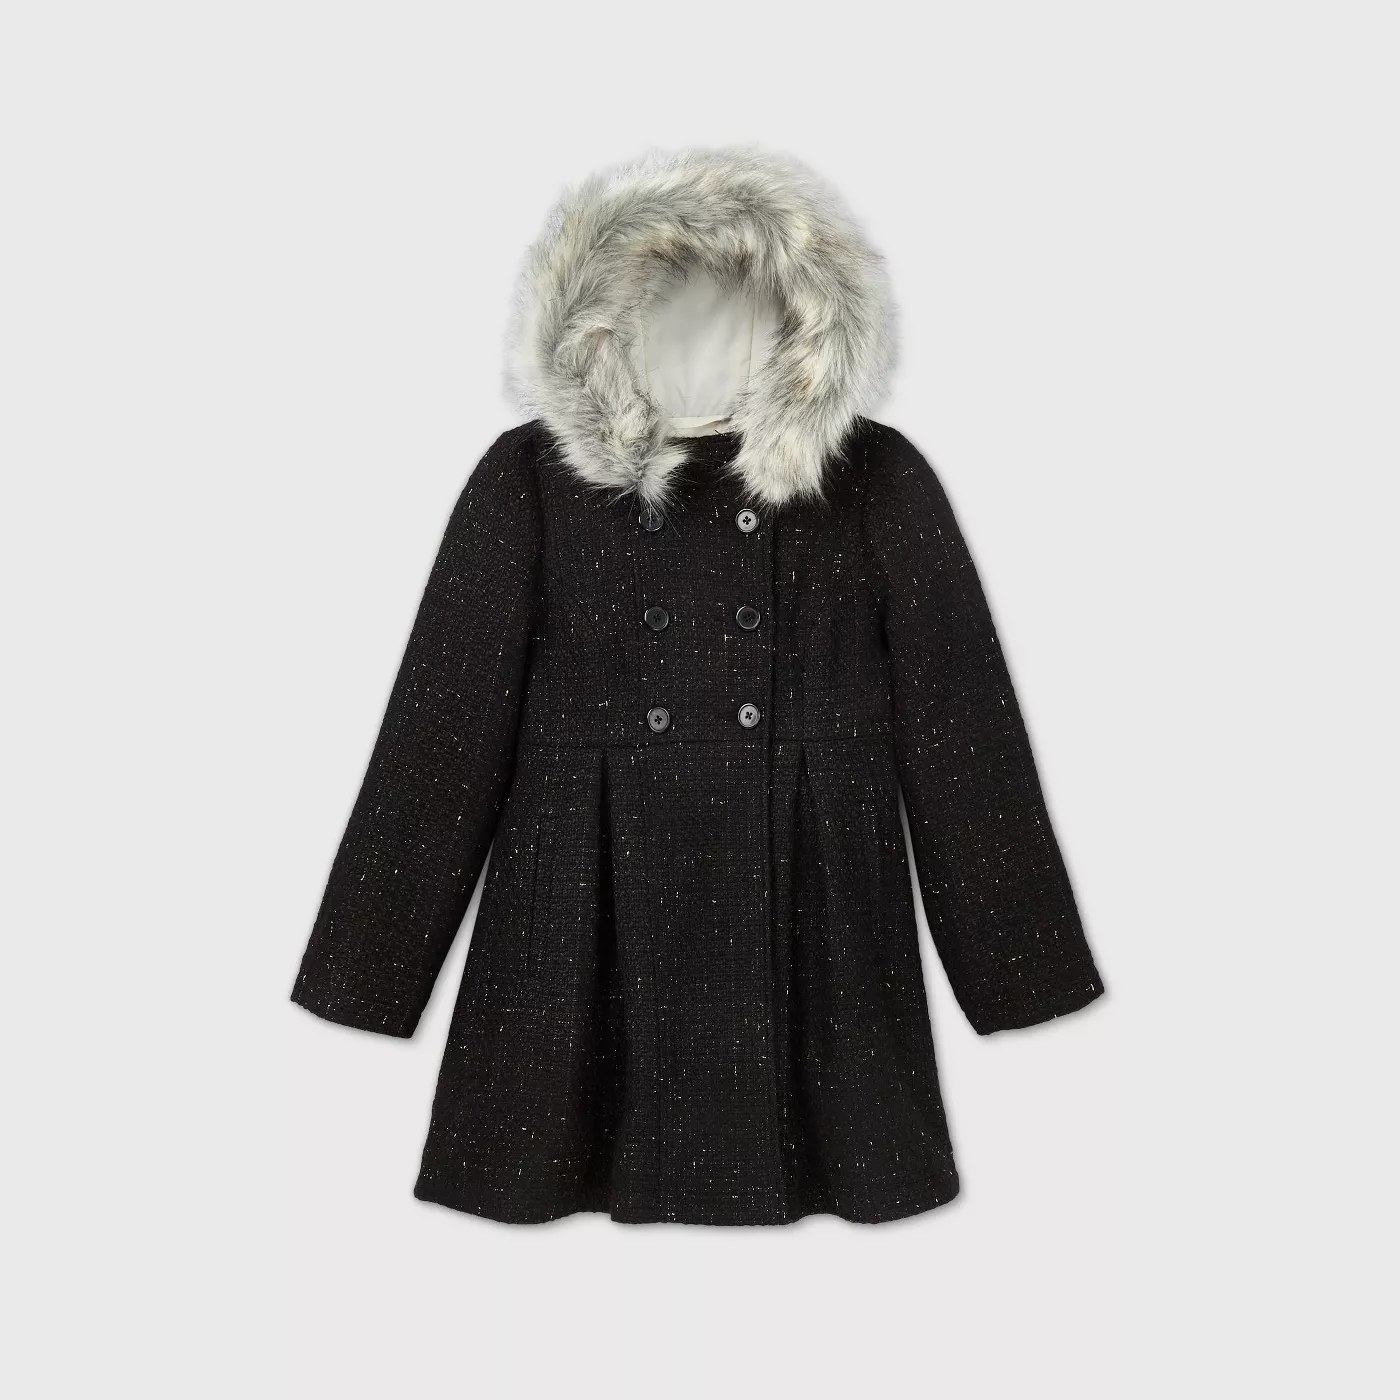 The black wool coat with a faux fur hood